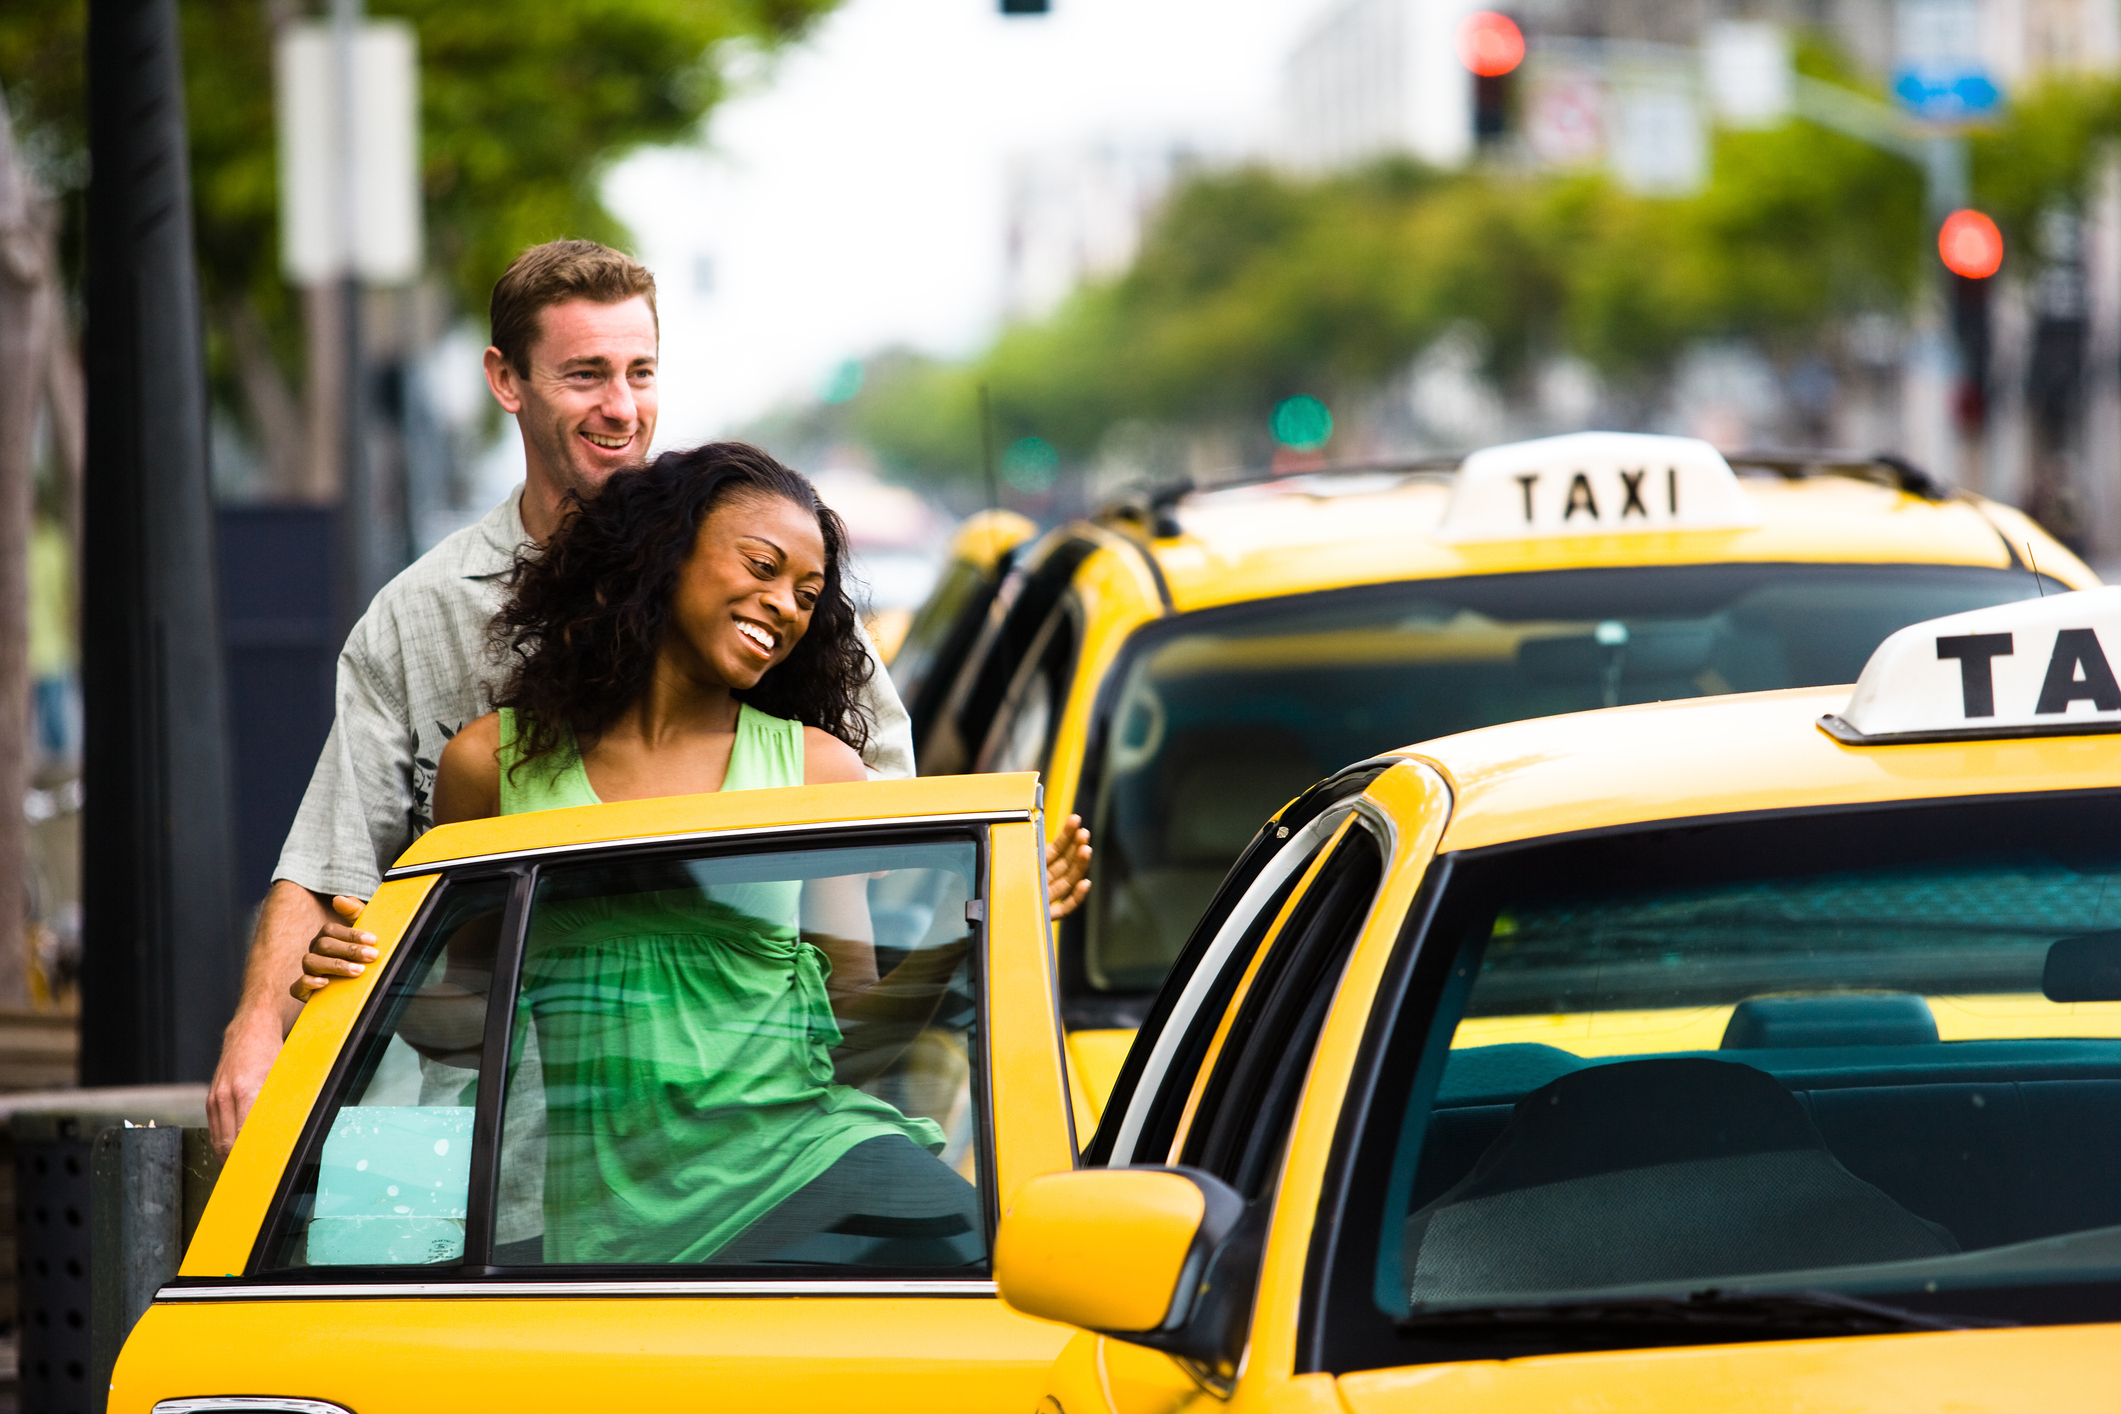 cab and taxi Hiring Services,Delhi